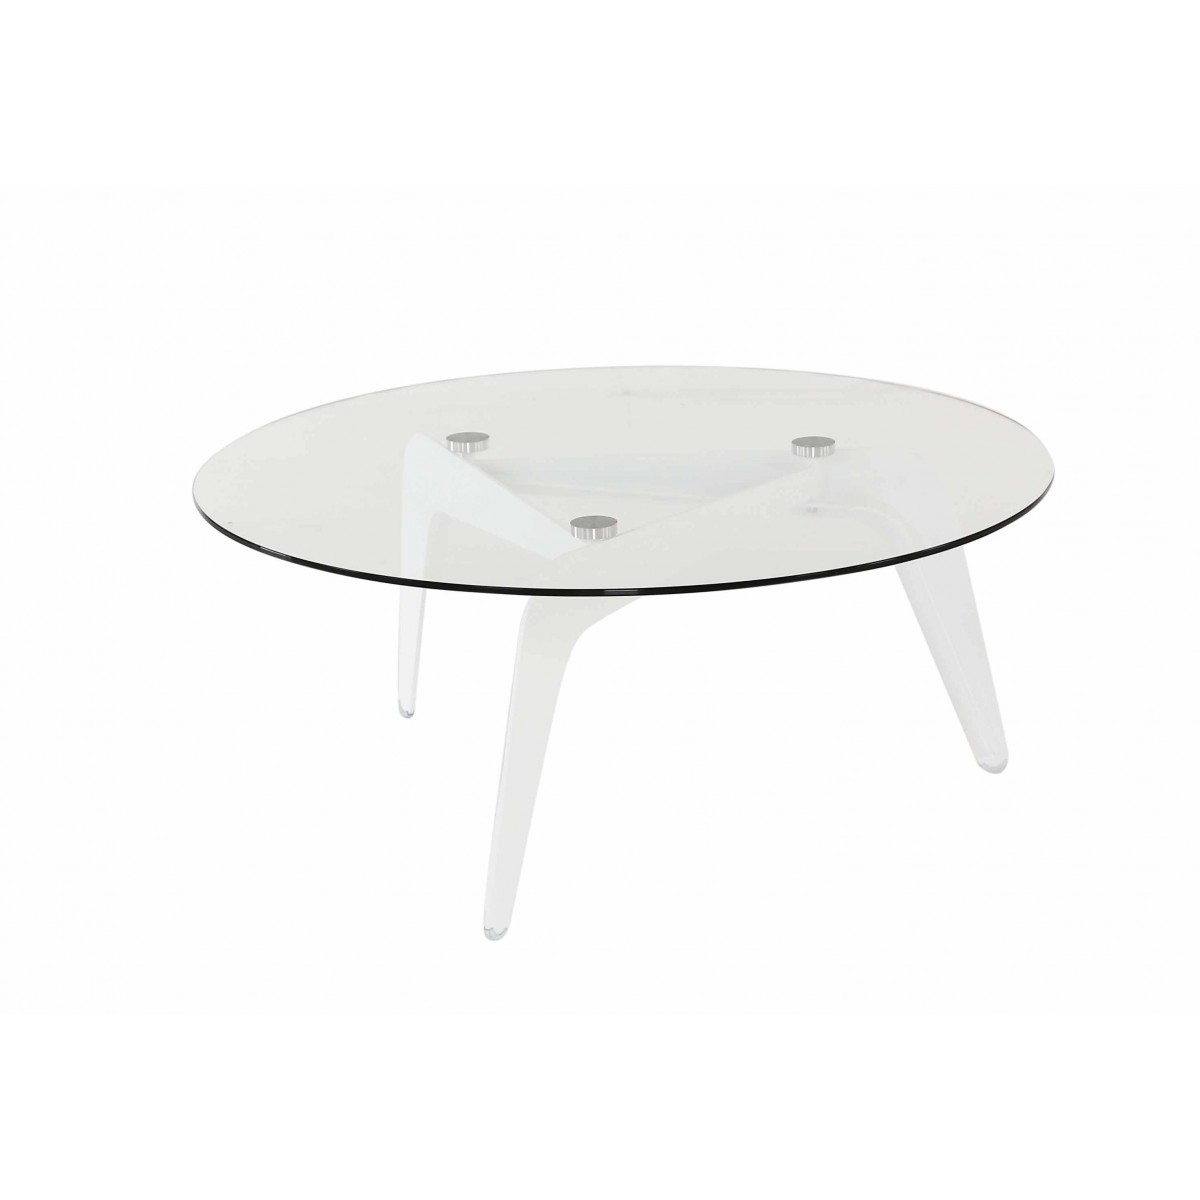 Table basse ronde en verre design mooviin for Table de salon plexiglass